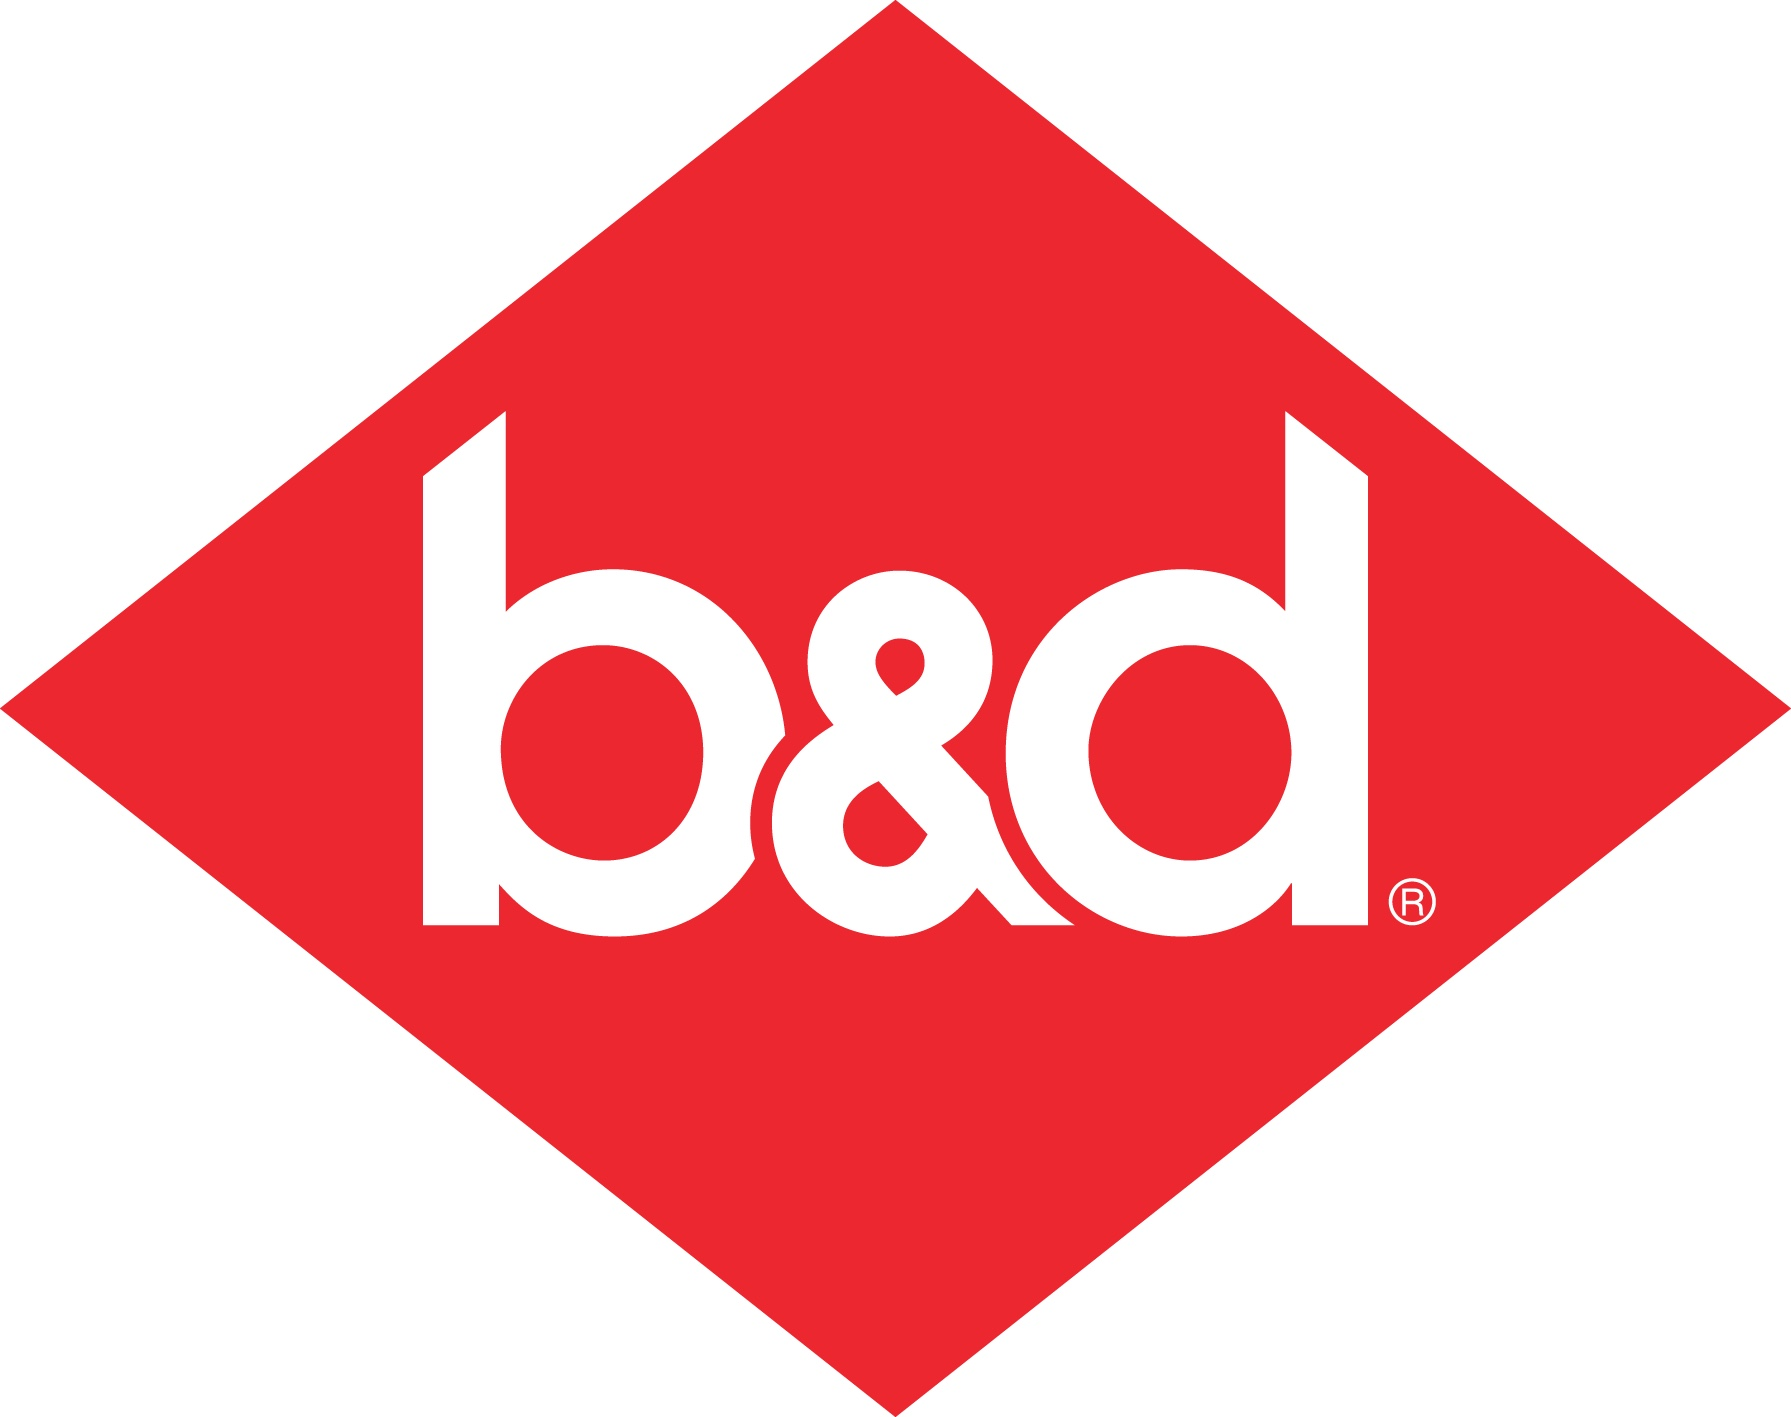 B&D Group appoints Thinkerbell as creative agency following a competitive pitch